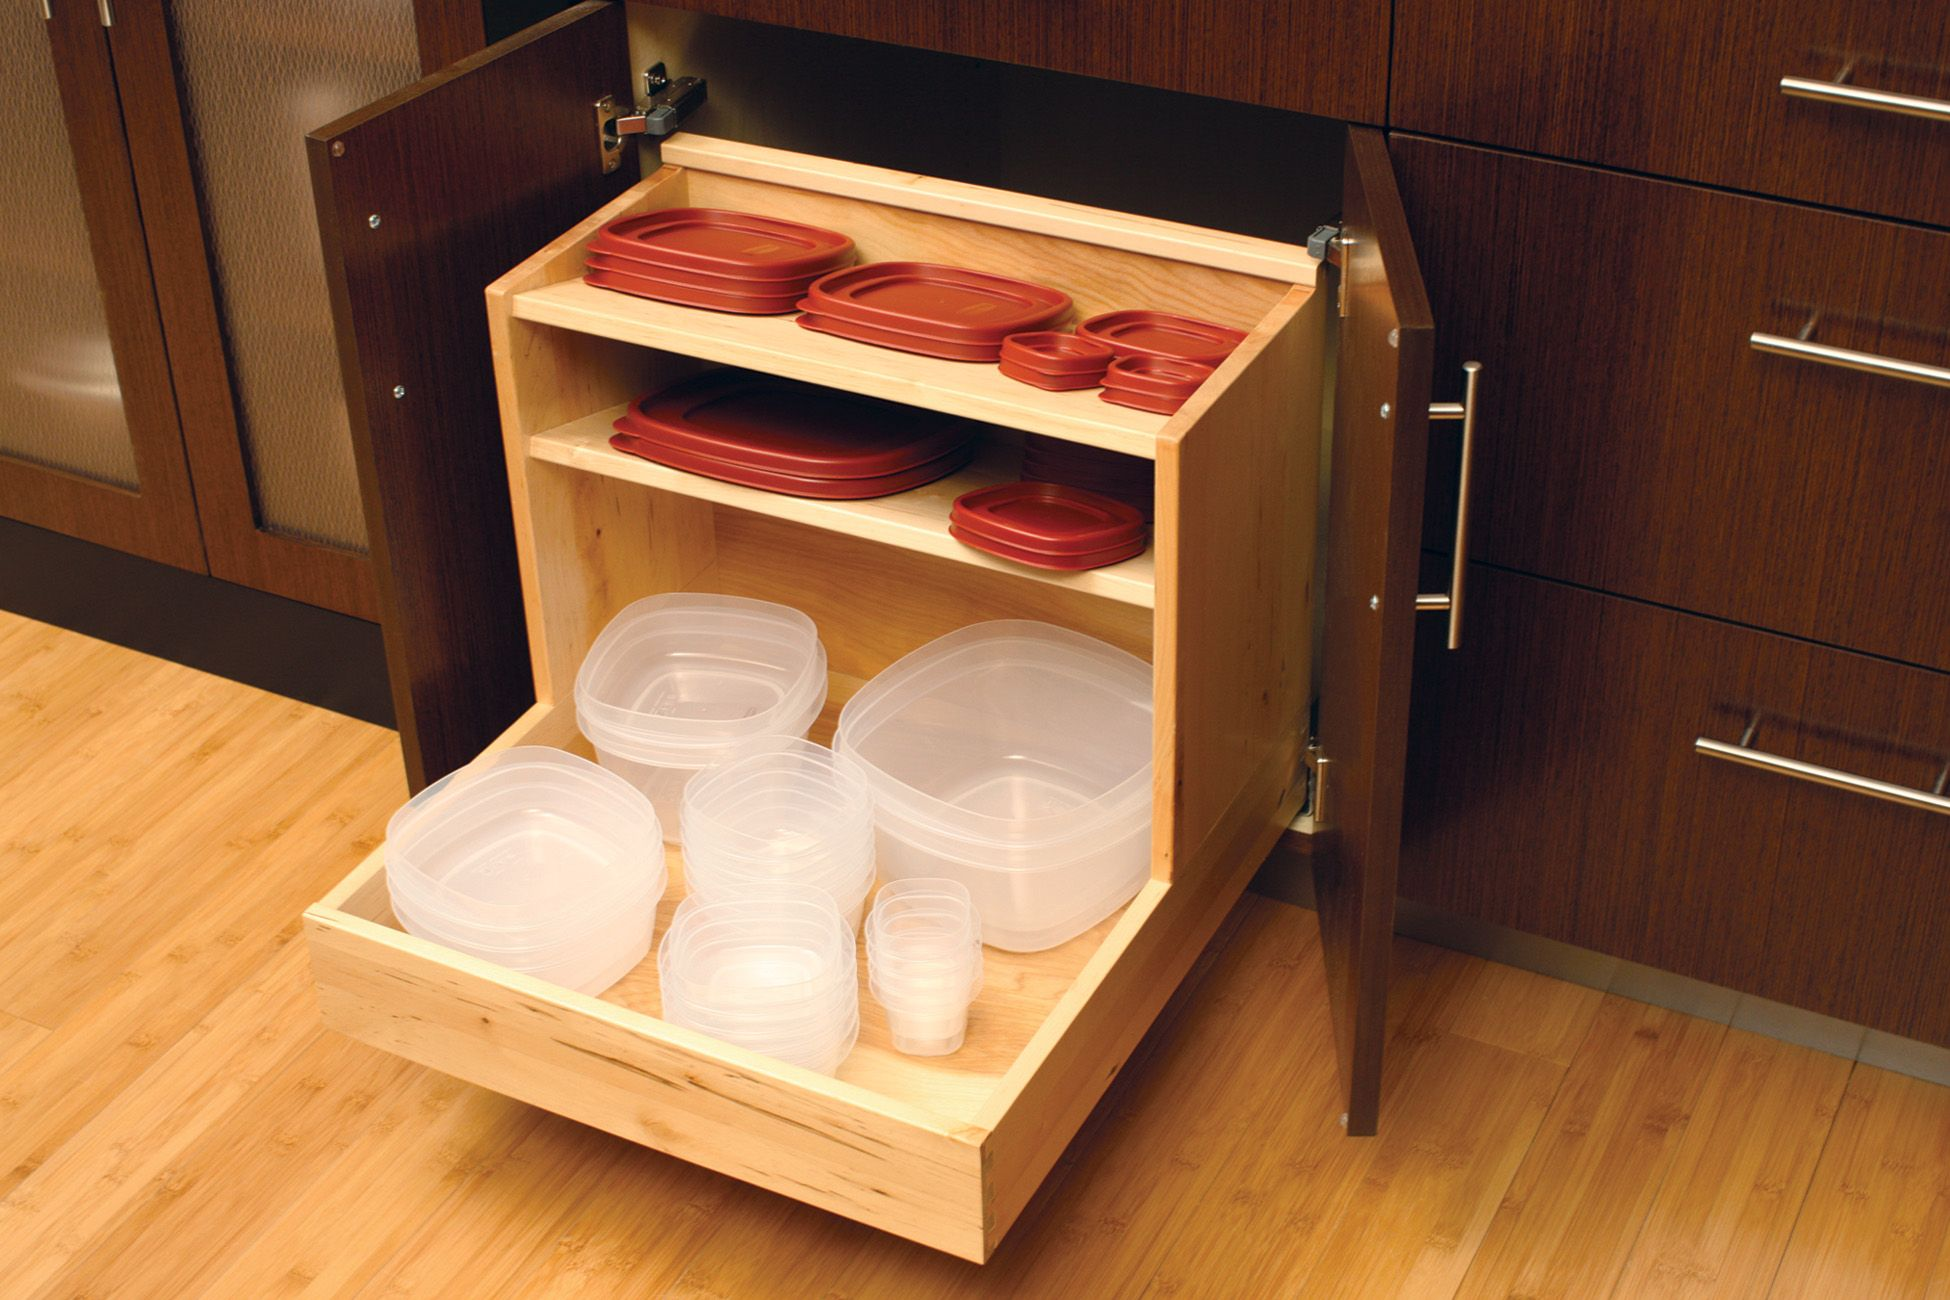 Storage Solutions Neatly Store Plastic Storage Containers And